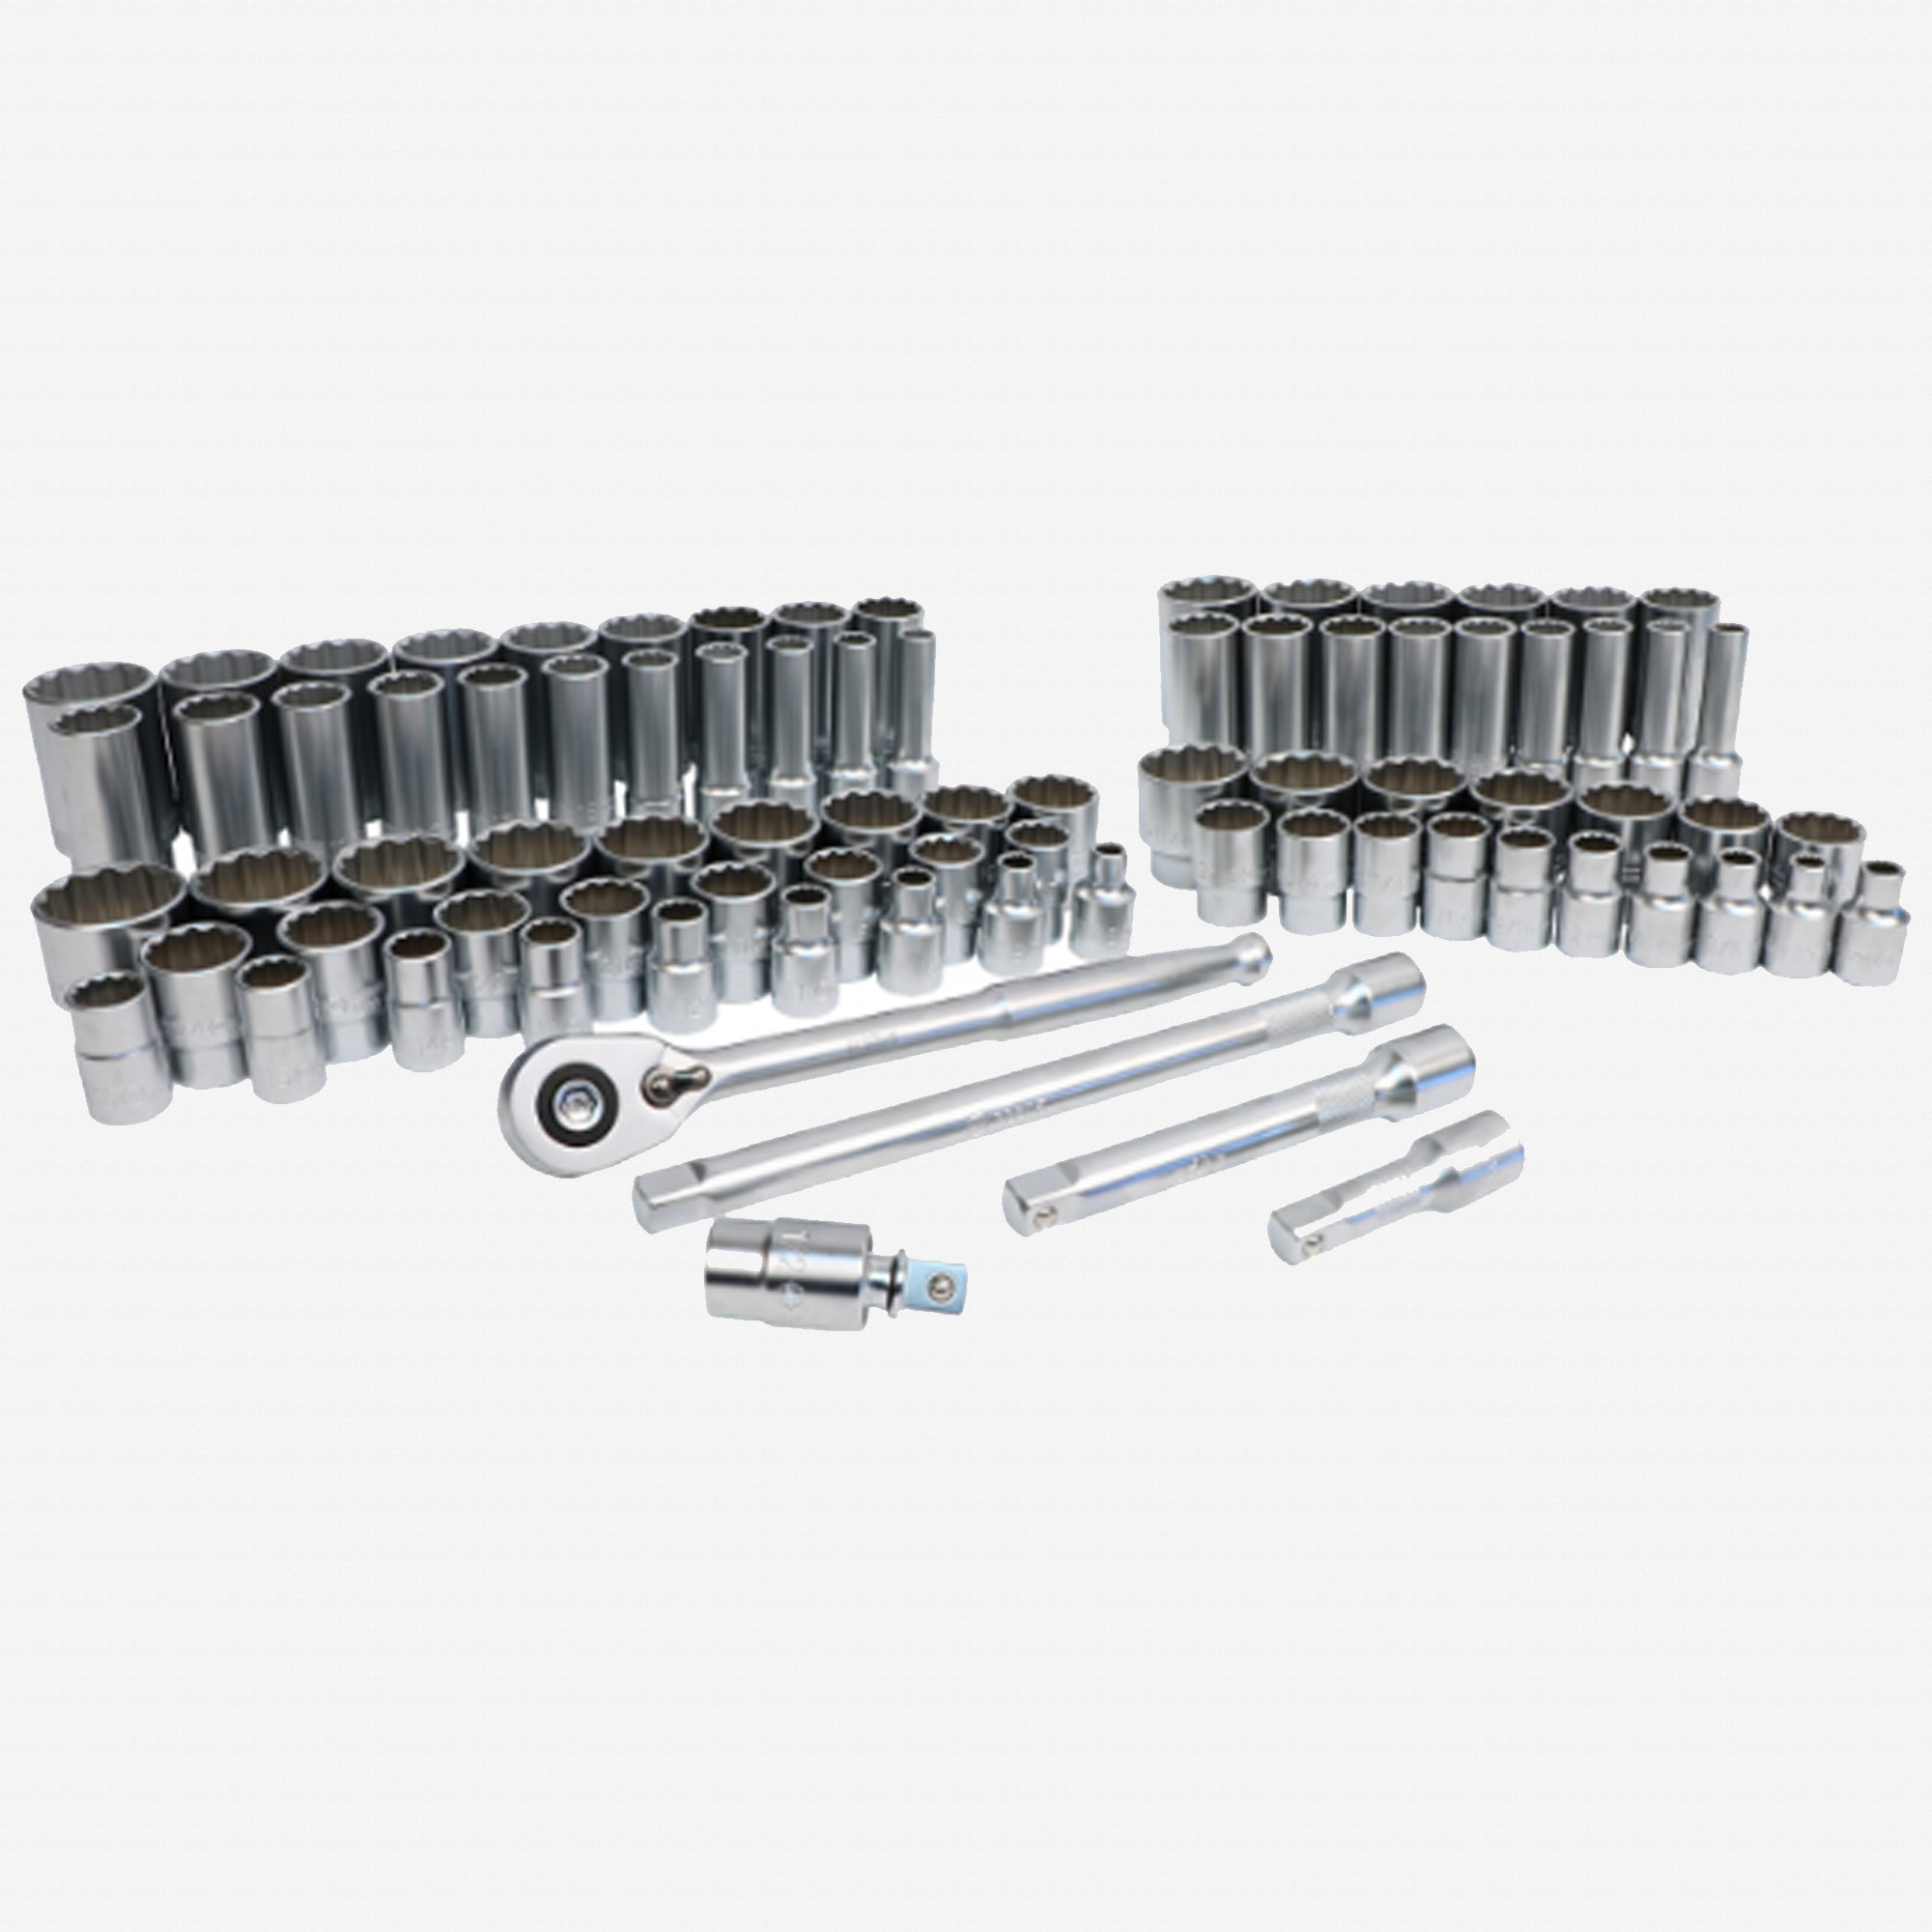 """Wiha 33899 Metric and SAE Socket Set, 12 Point 1/2"""" Drive with Ratchet & Extensions, 84 Pieces"""